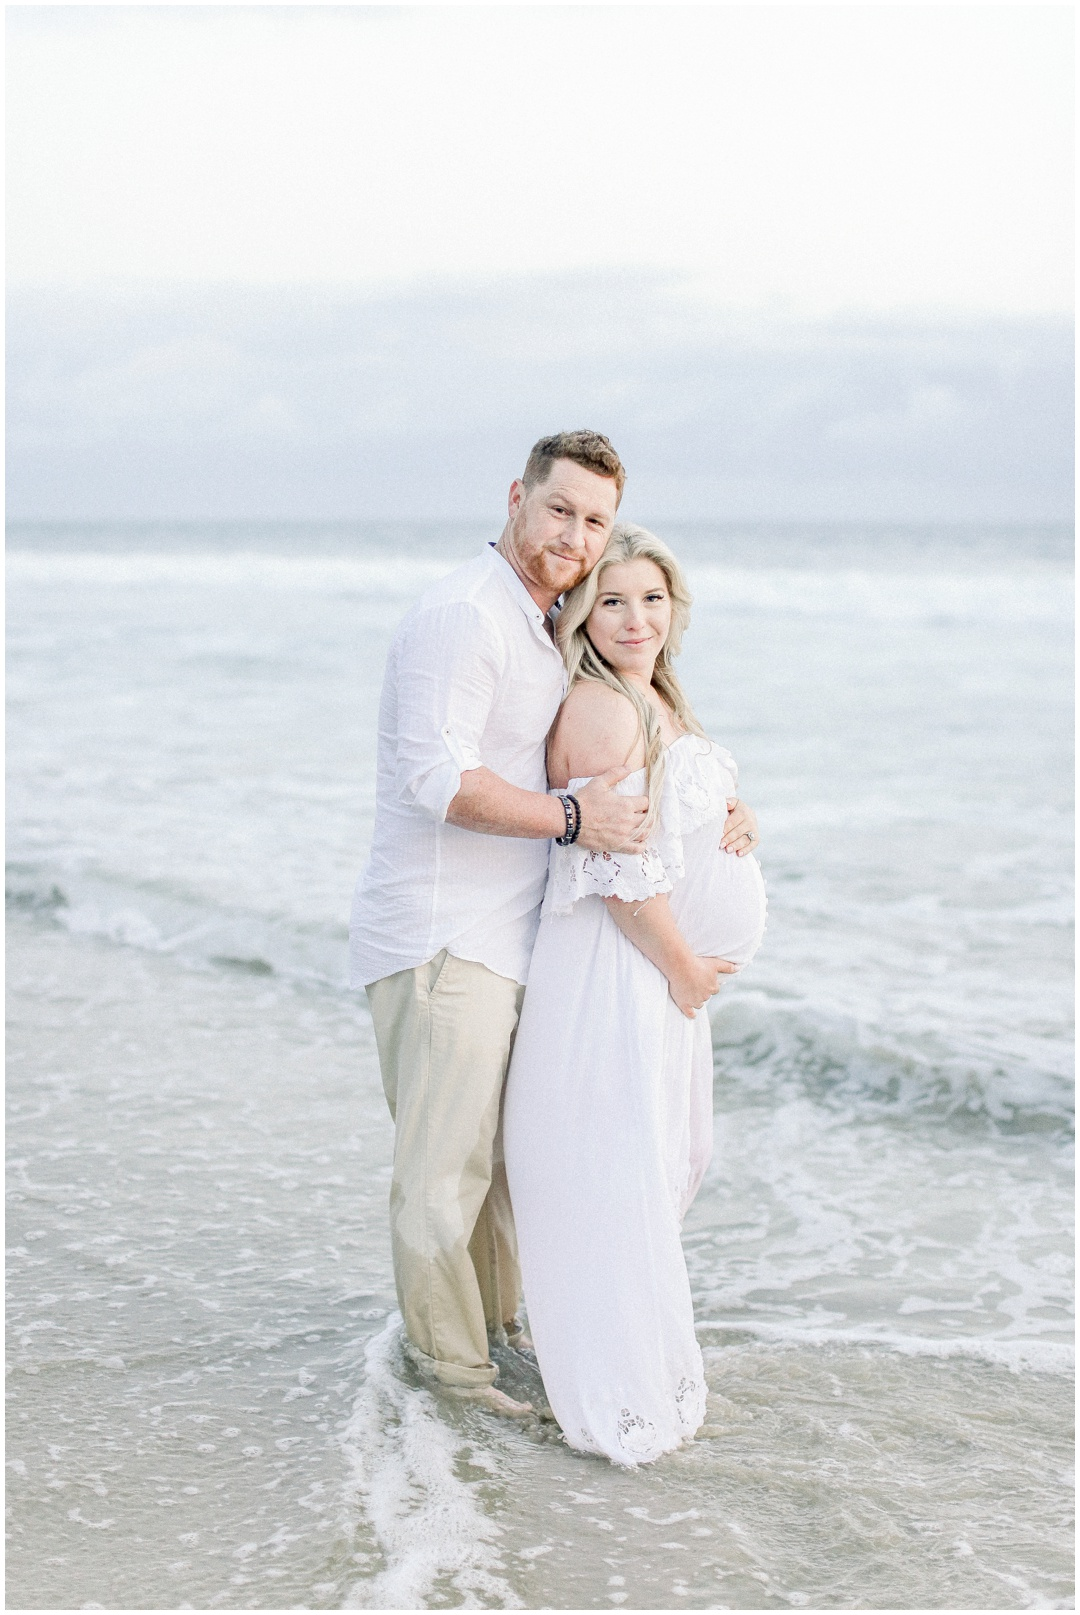 Newport_Beach_Newborn_Light_Airy_Natural_Photographer_Newport_Beach_Photographer_Orange_County_Family_Photographer_Cori_Kleckner_Photography_Newport_Beach_Photographer_Maternity_kole_calhoun56_kole_calhoun_Jennifer_Calhoun_Knox_Calhoun_3702.jpg